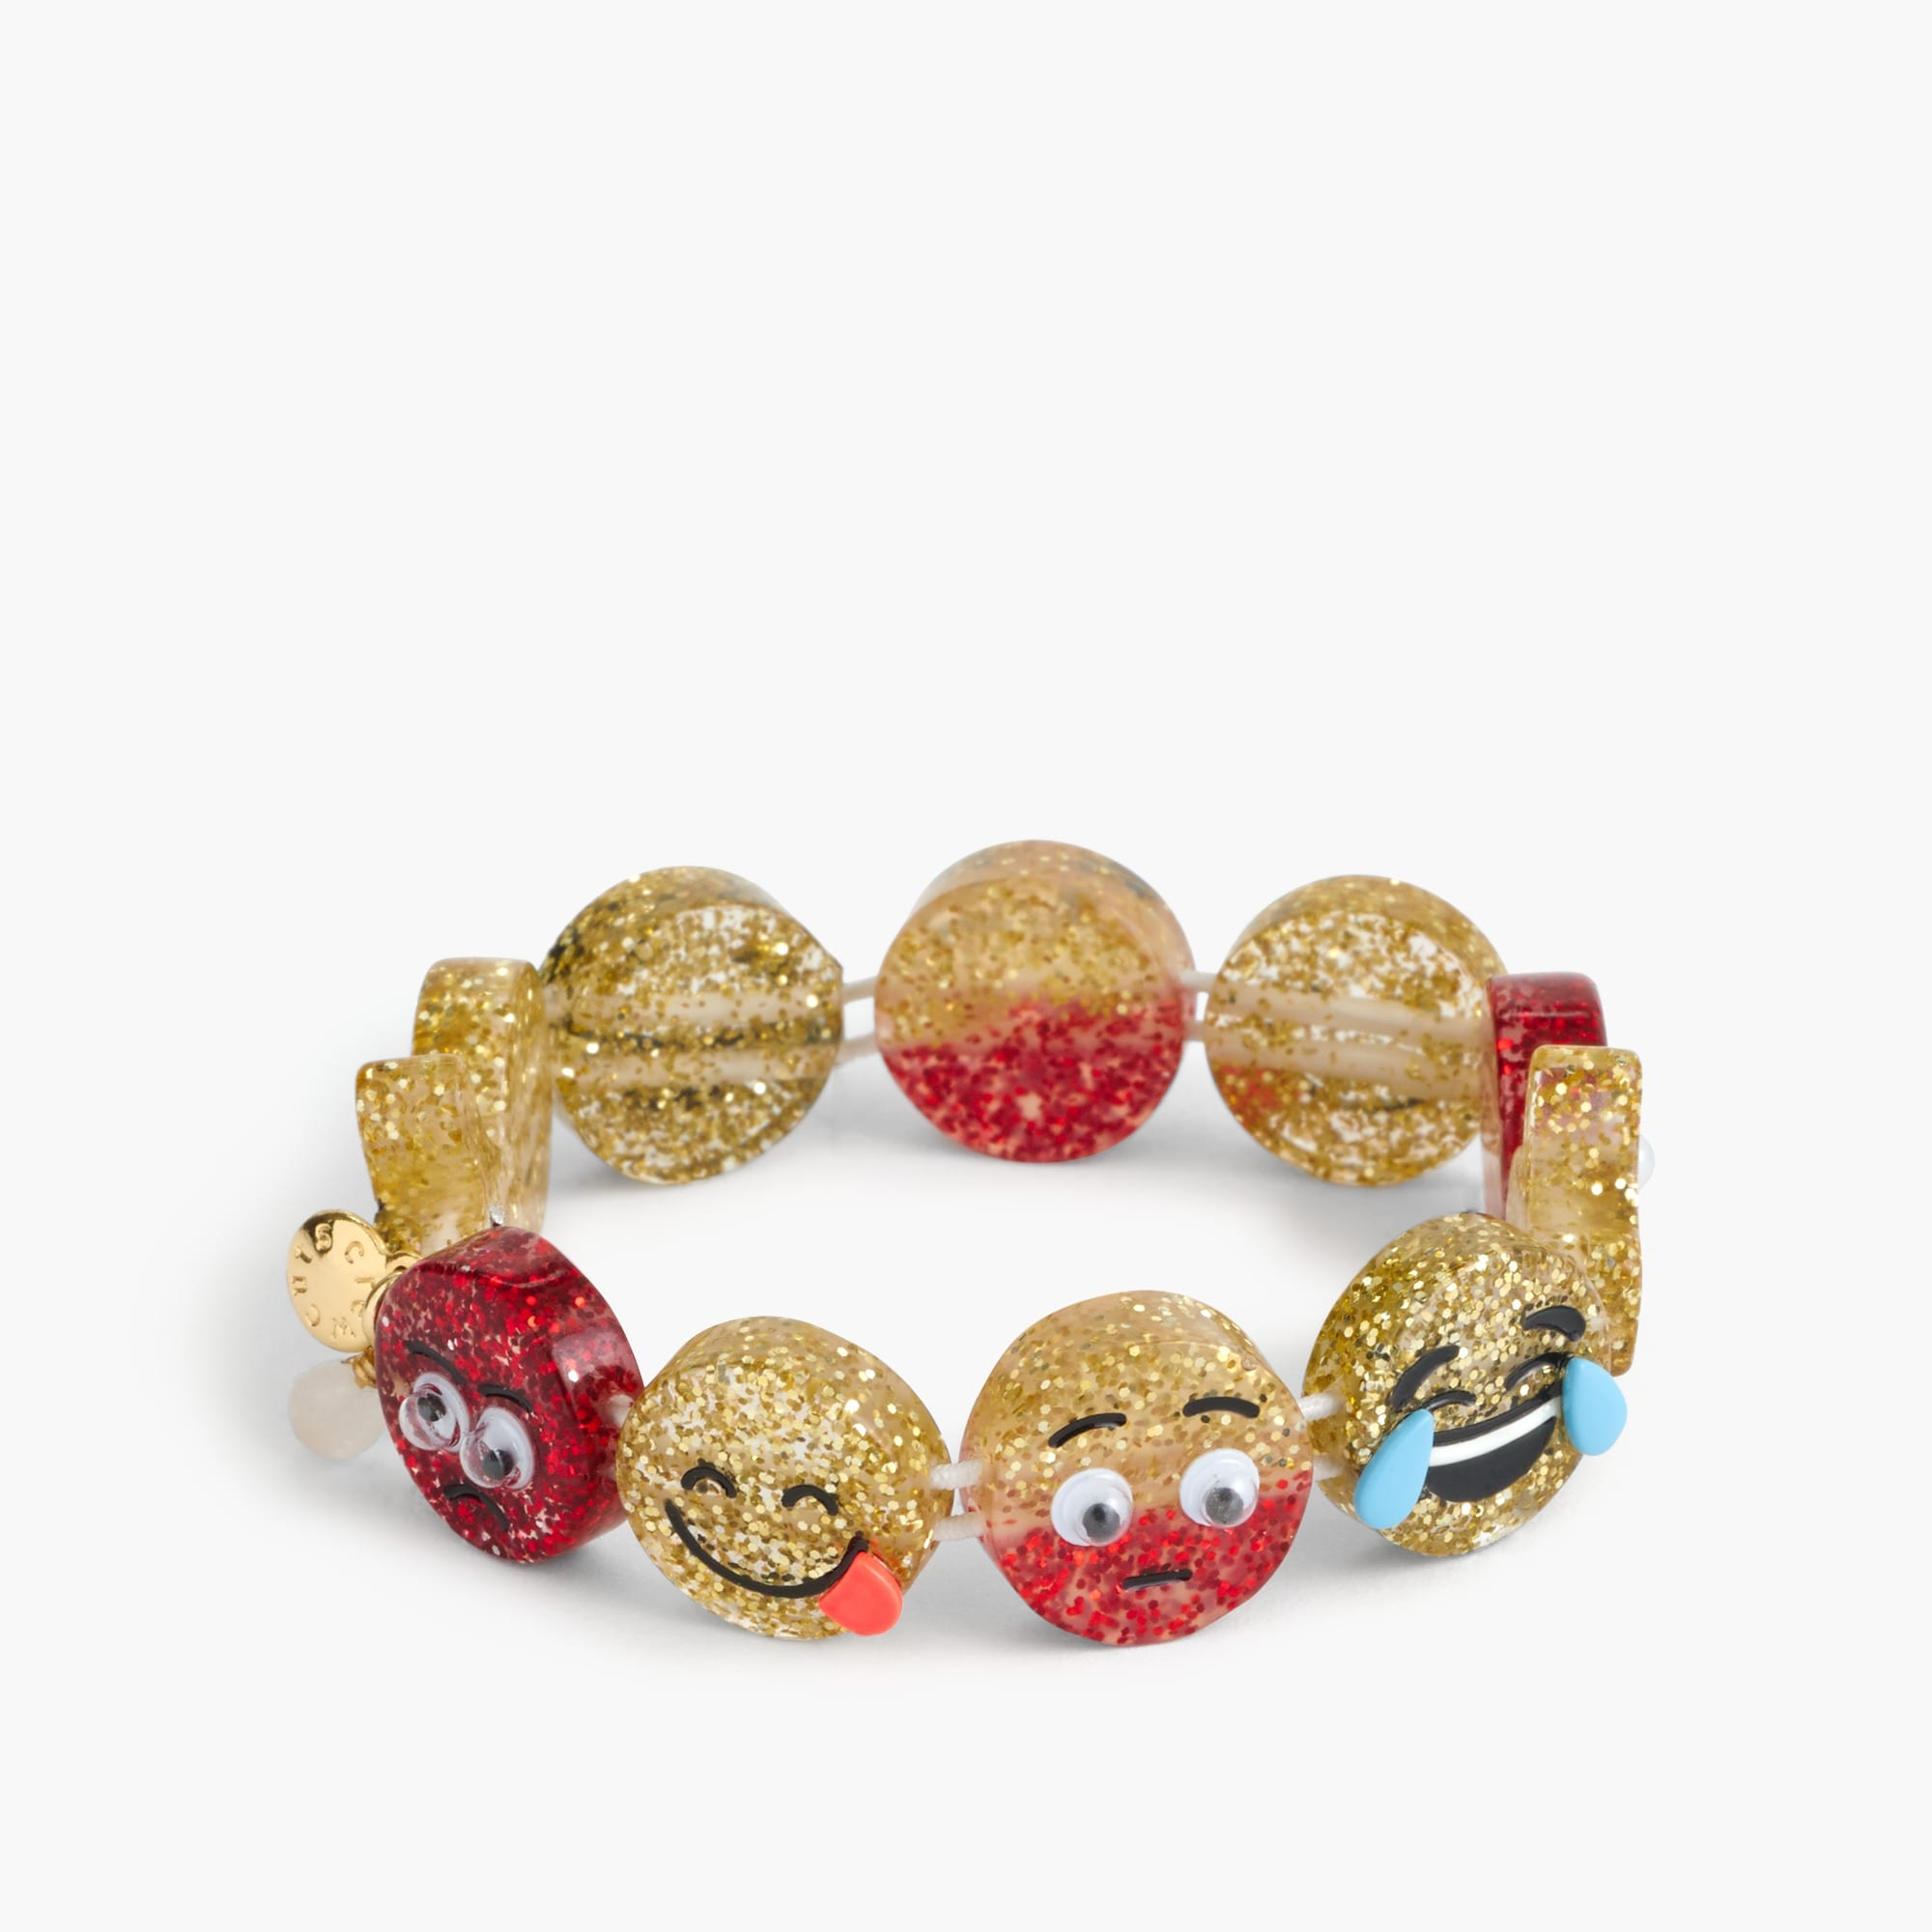 Girls' glitter emoji bracelet girl jewelry & accessories c